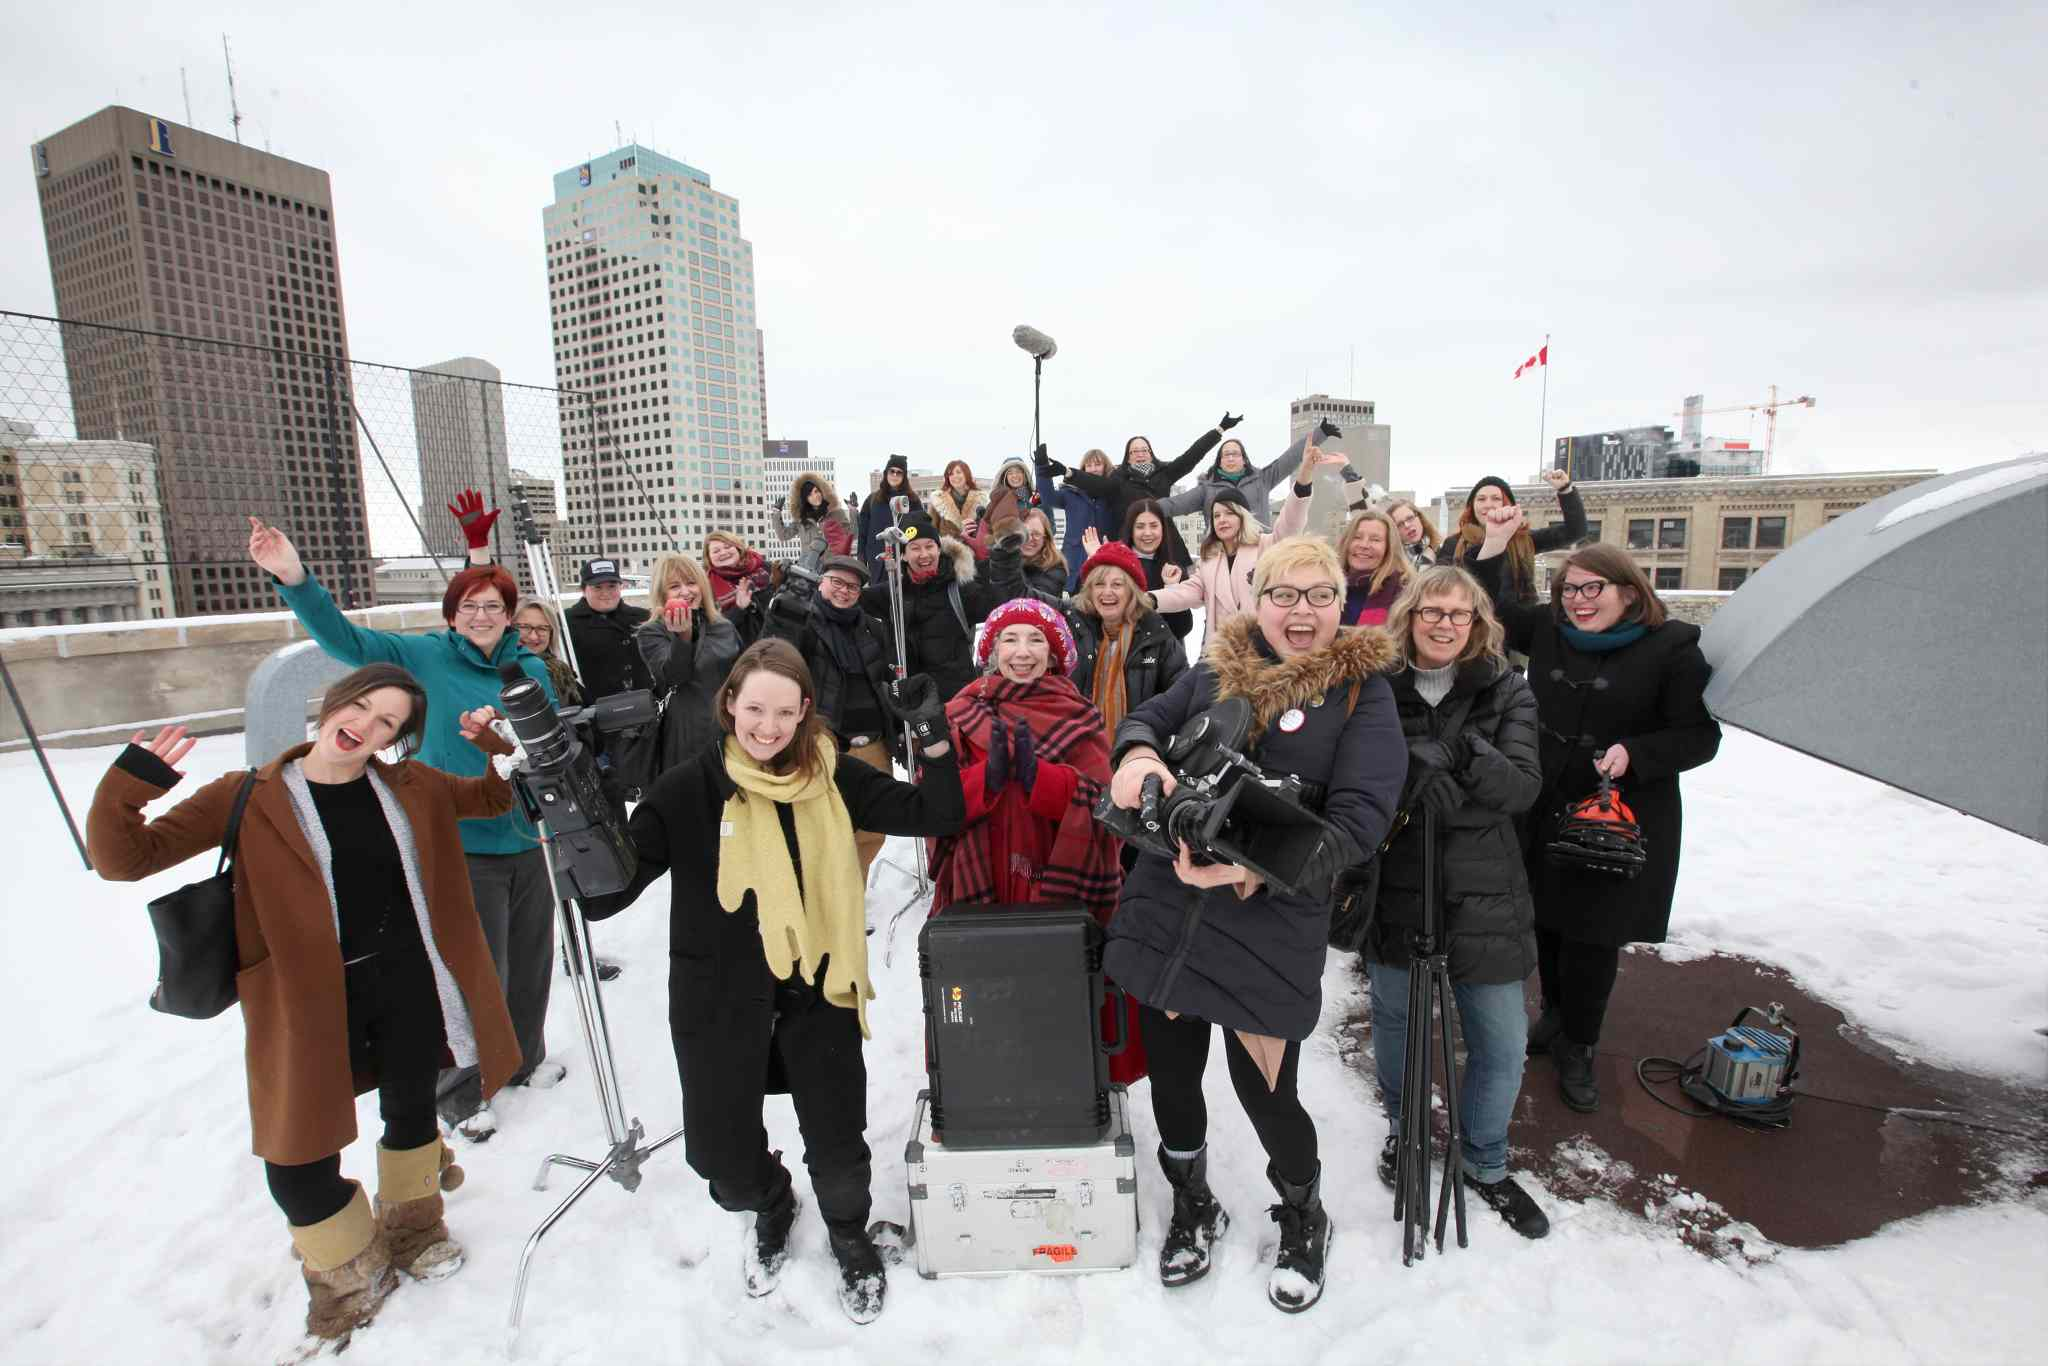 Local female filmmakers and videomakers on the rooftop of ArtSpace.